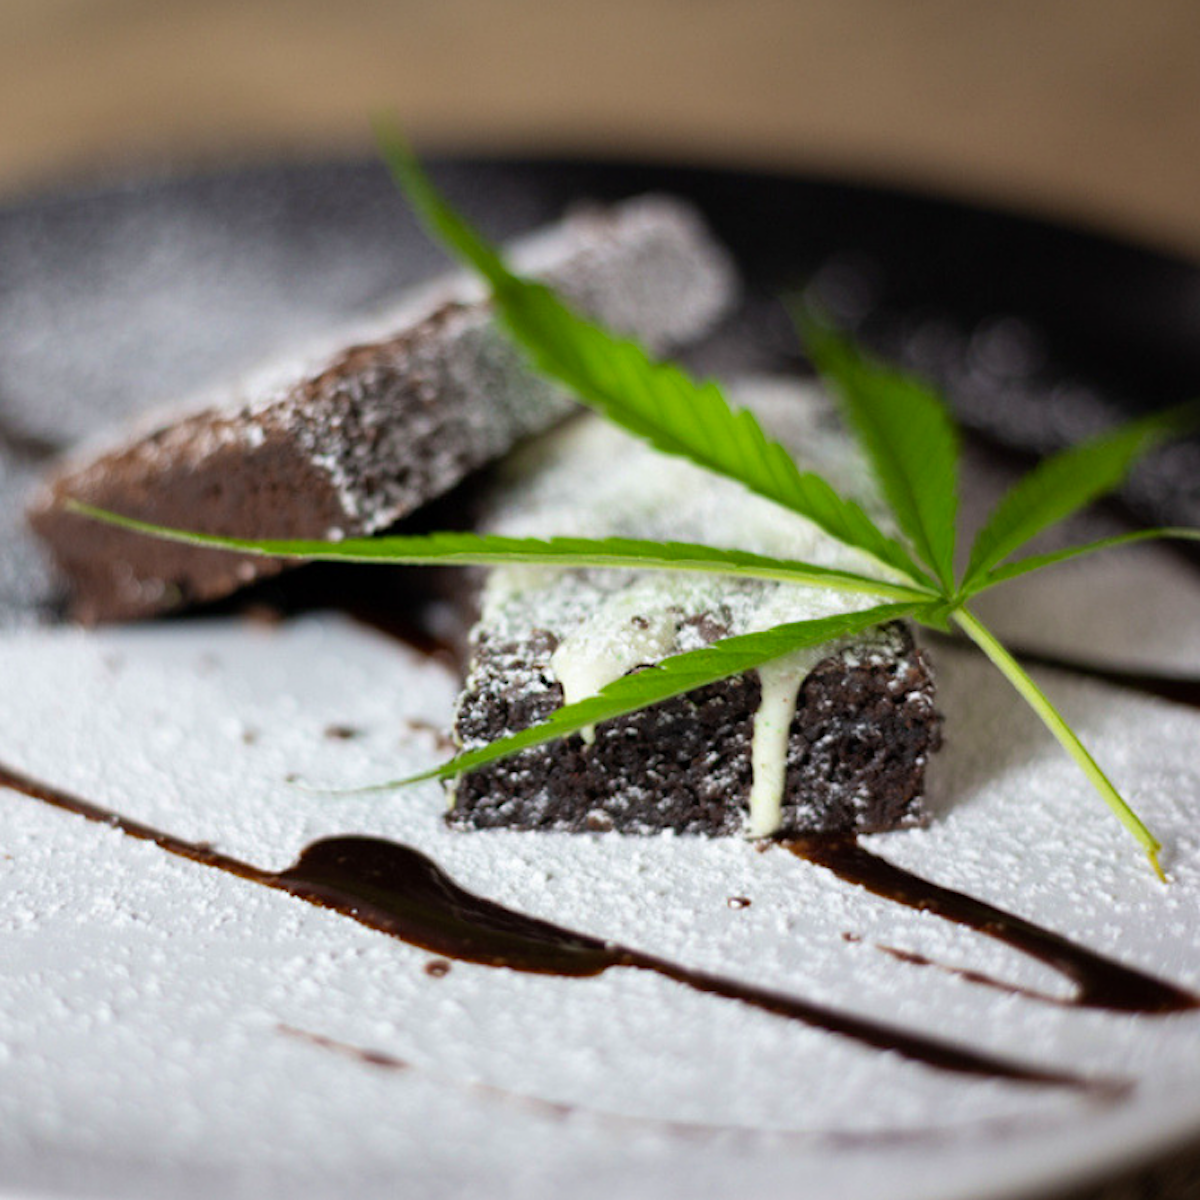 A cannabis-infused vegetarian restaurant is set to open in Brighton